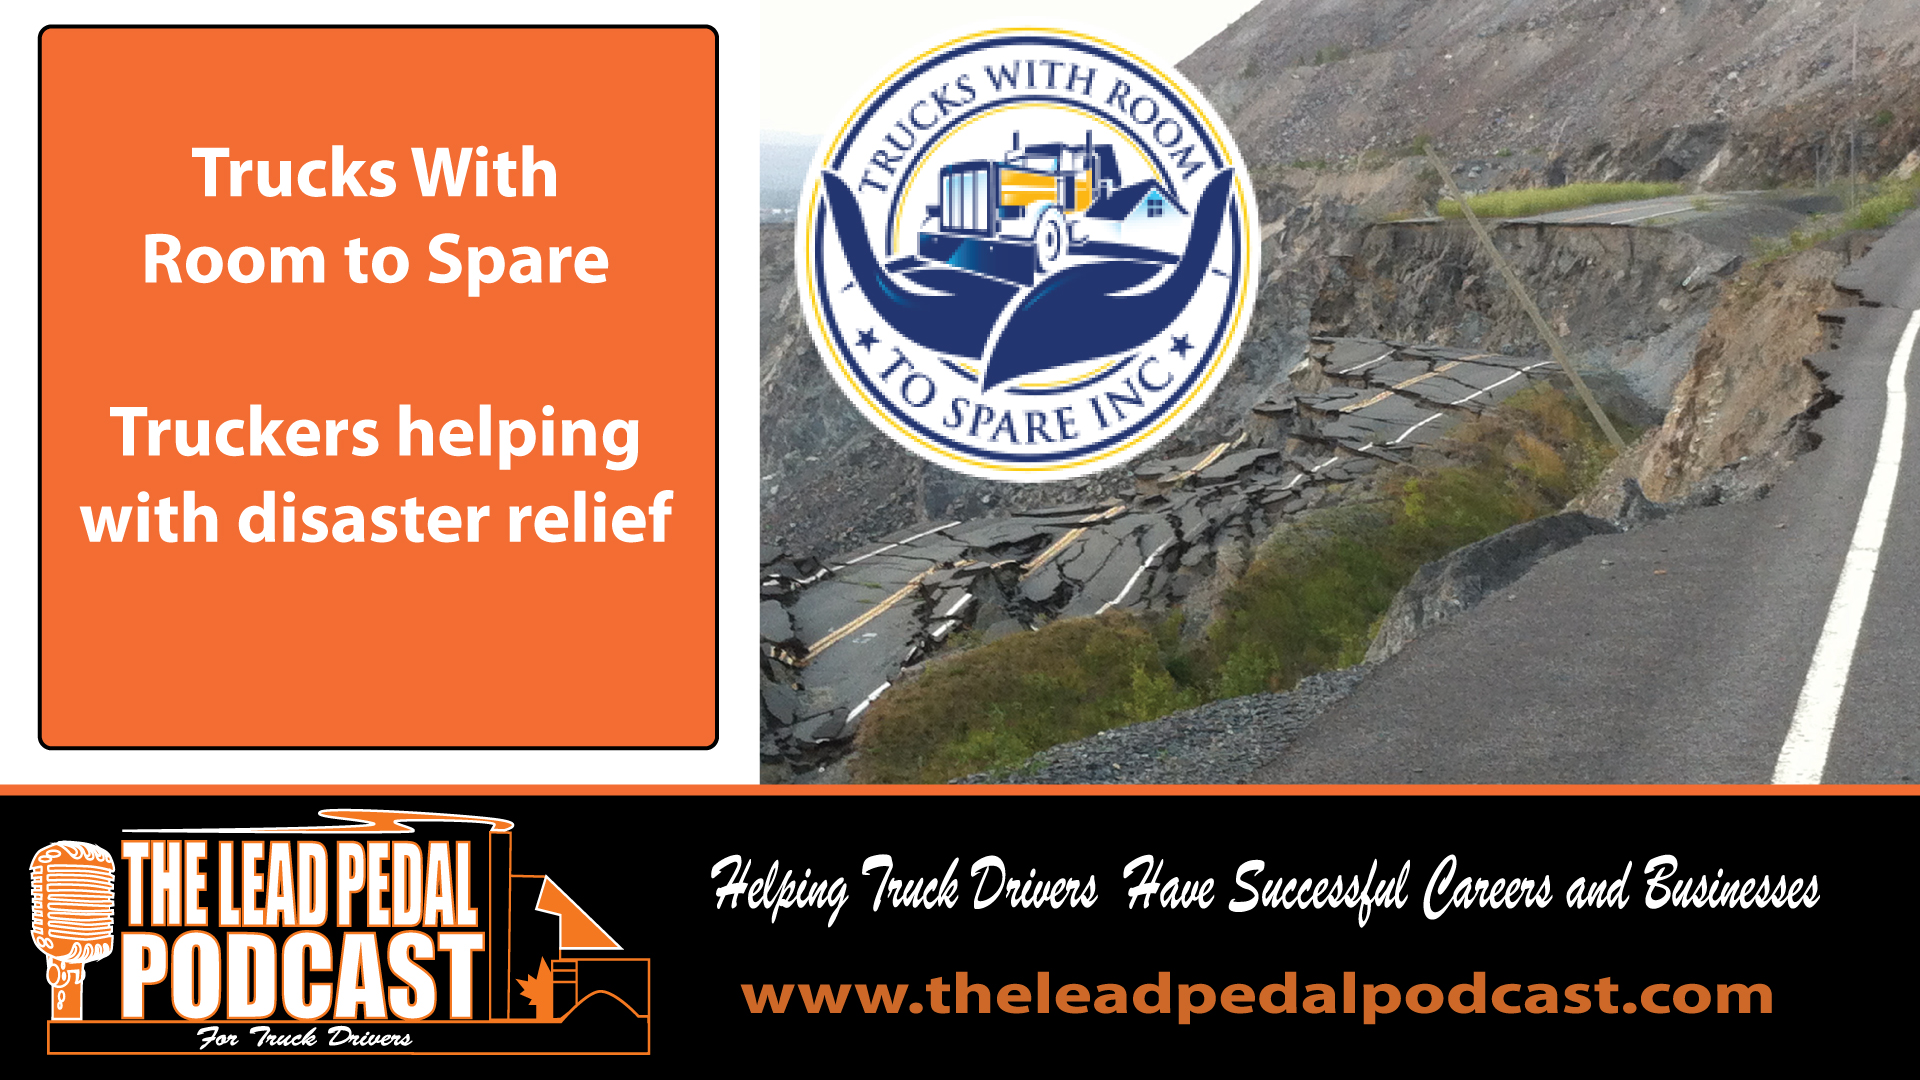 LP674 Trucks With Room to Spare Help in Disaster Relief